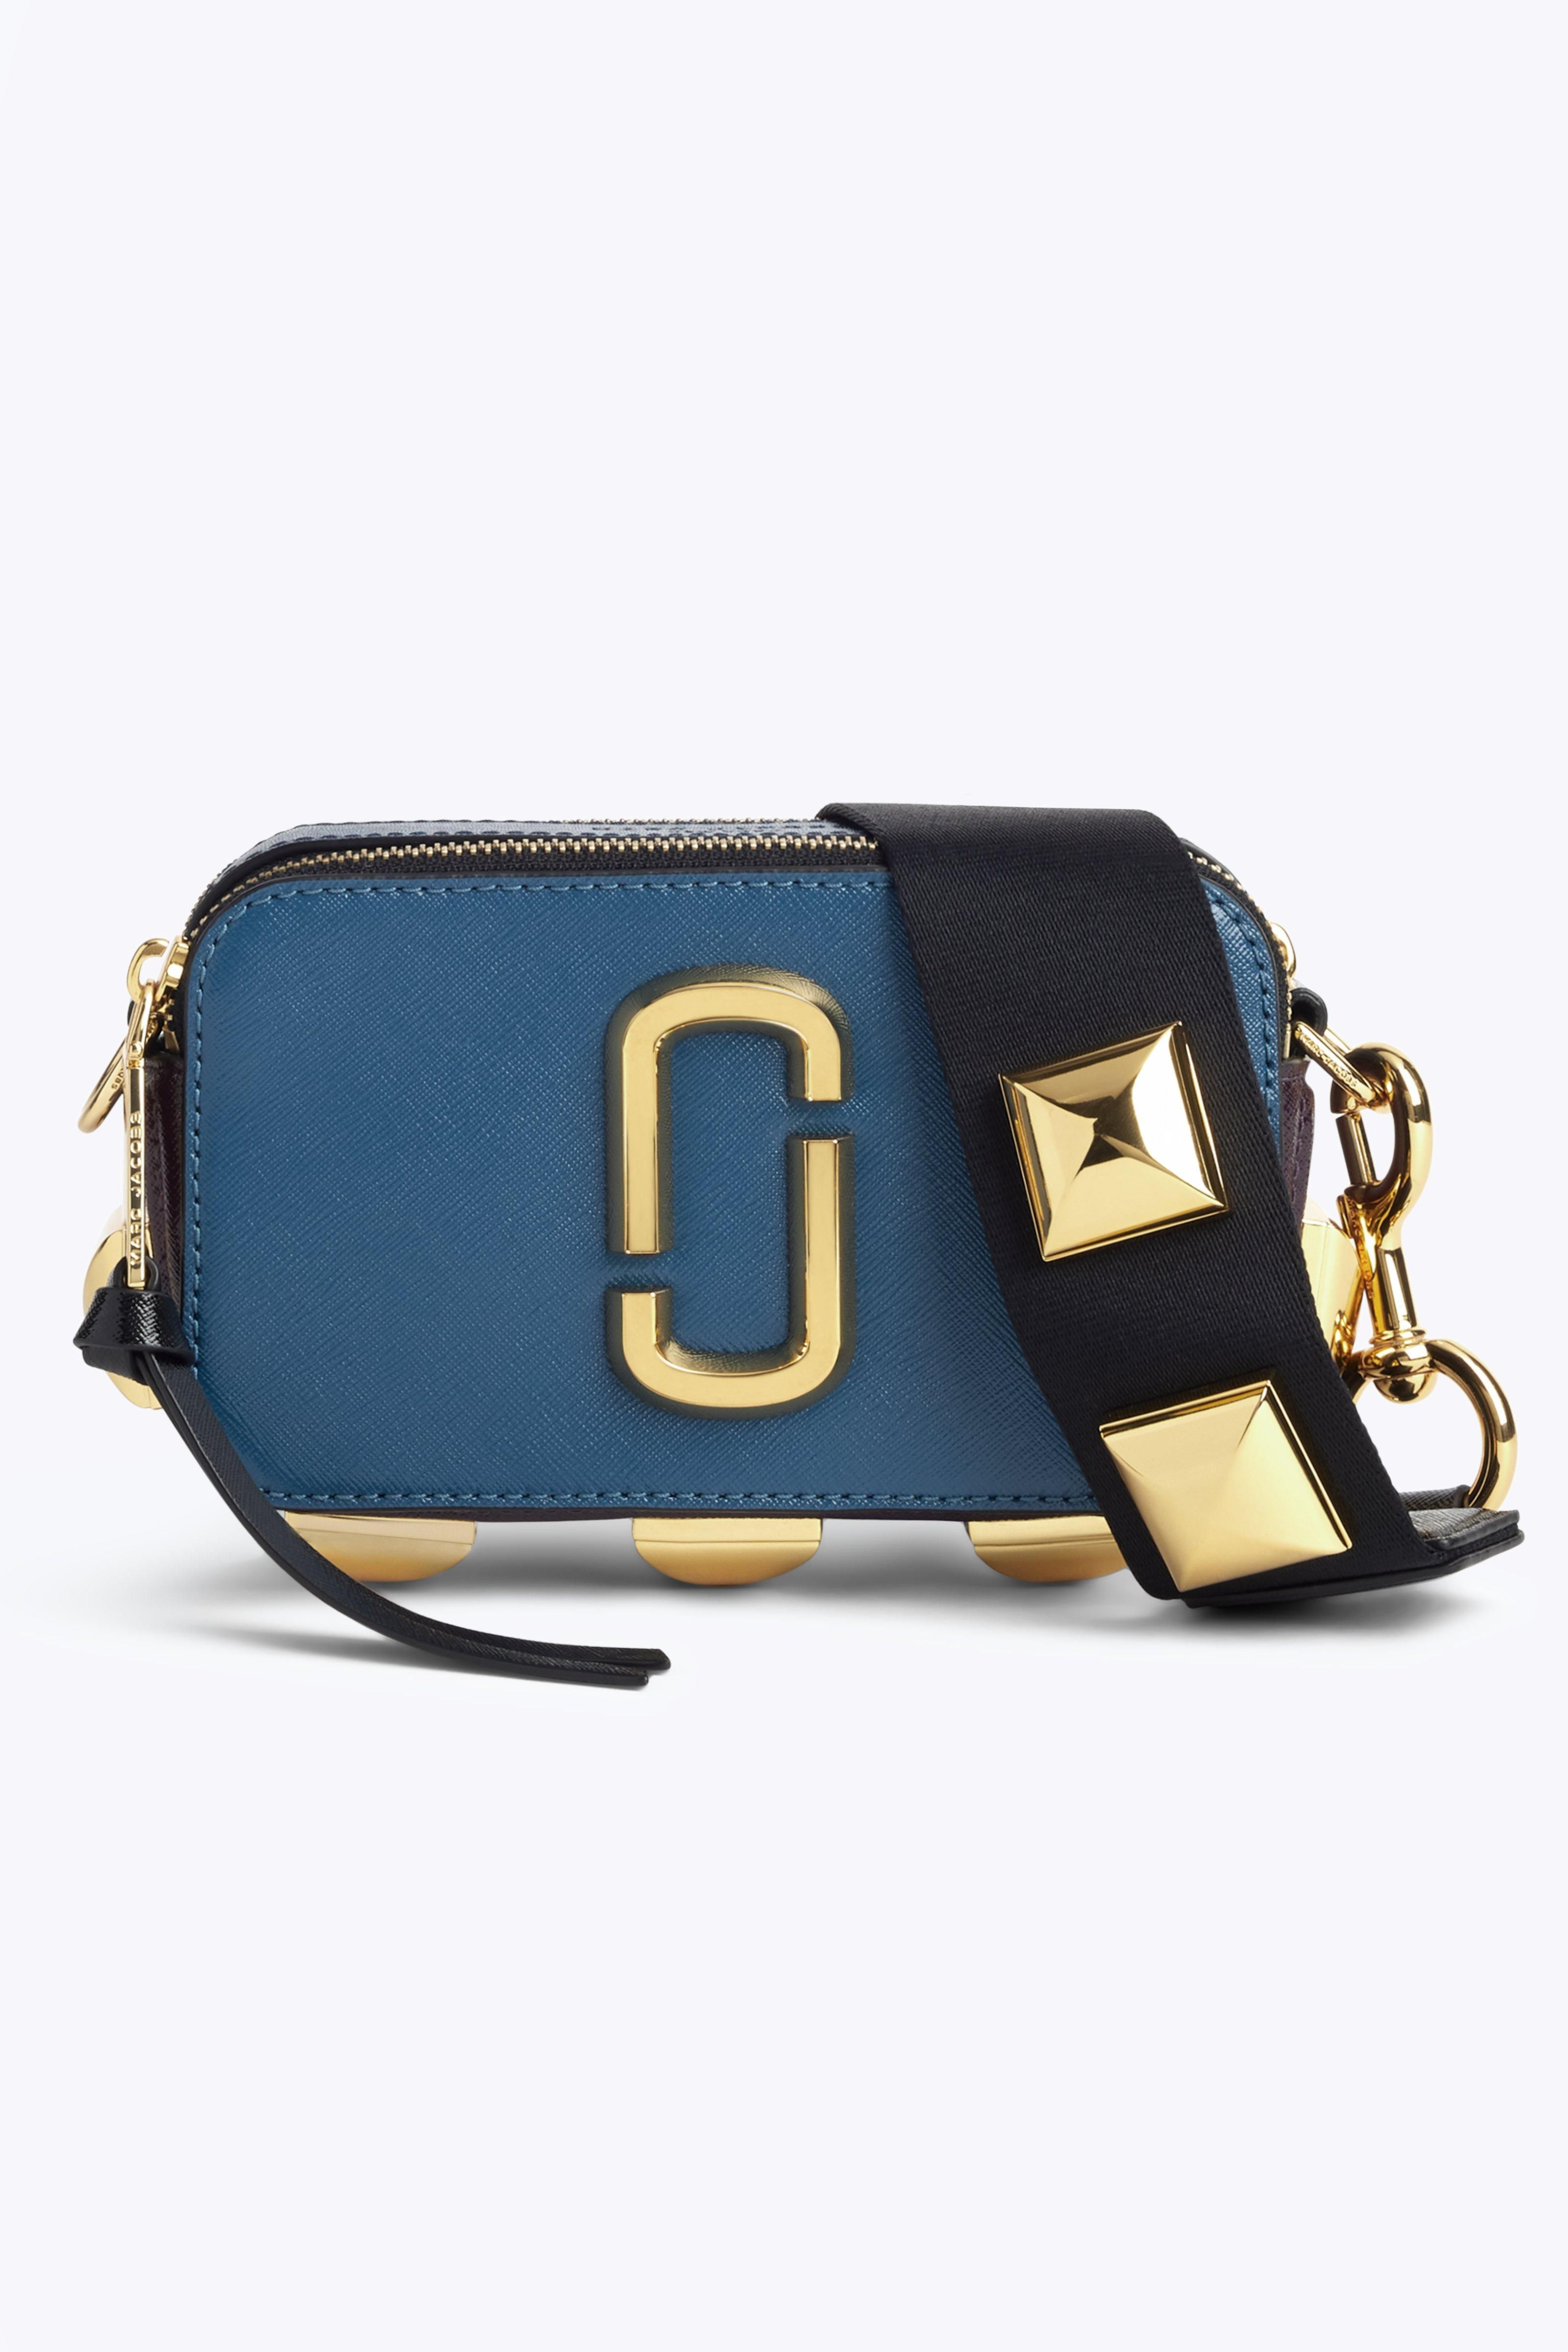 47e7be28db1d Need a compact carryall  Shop Marc Jacobs  best-selling Snapshot ...